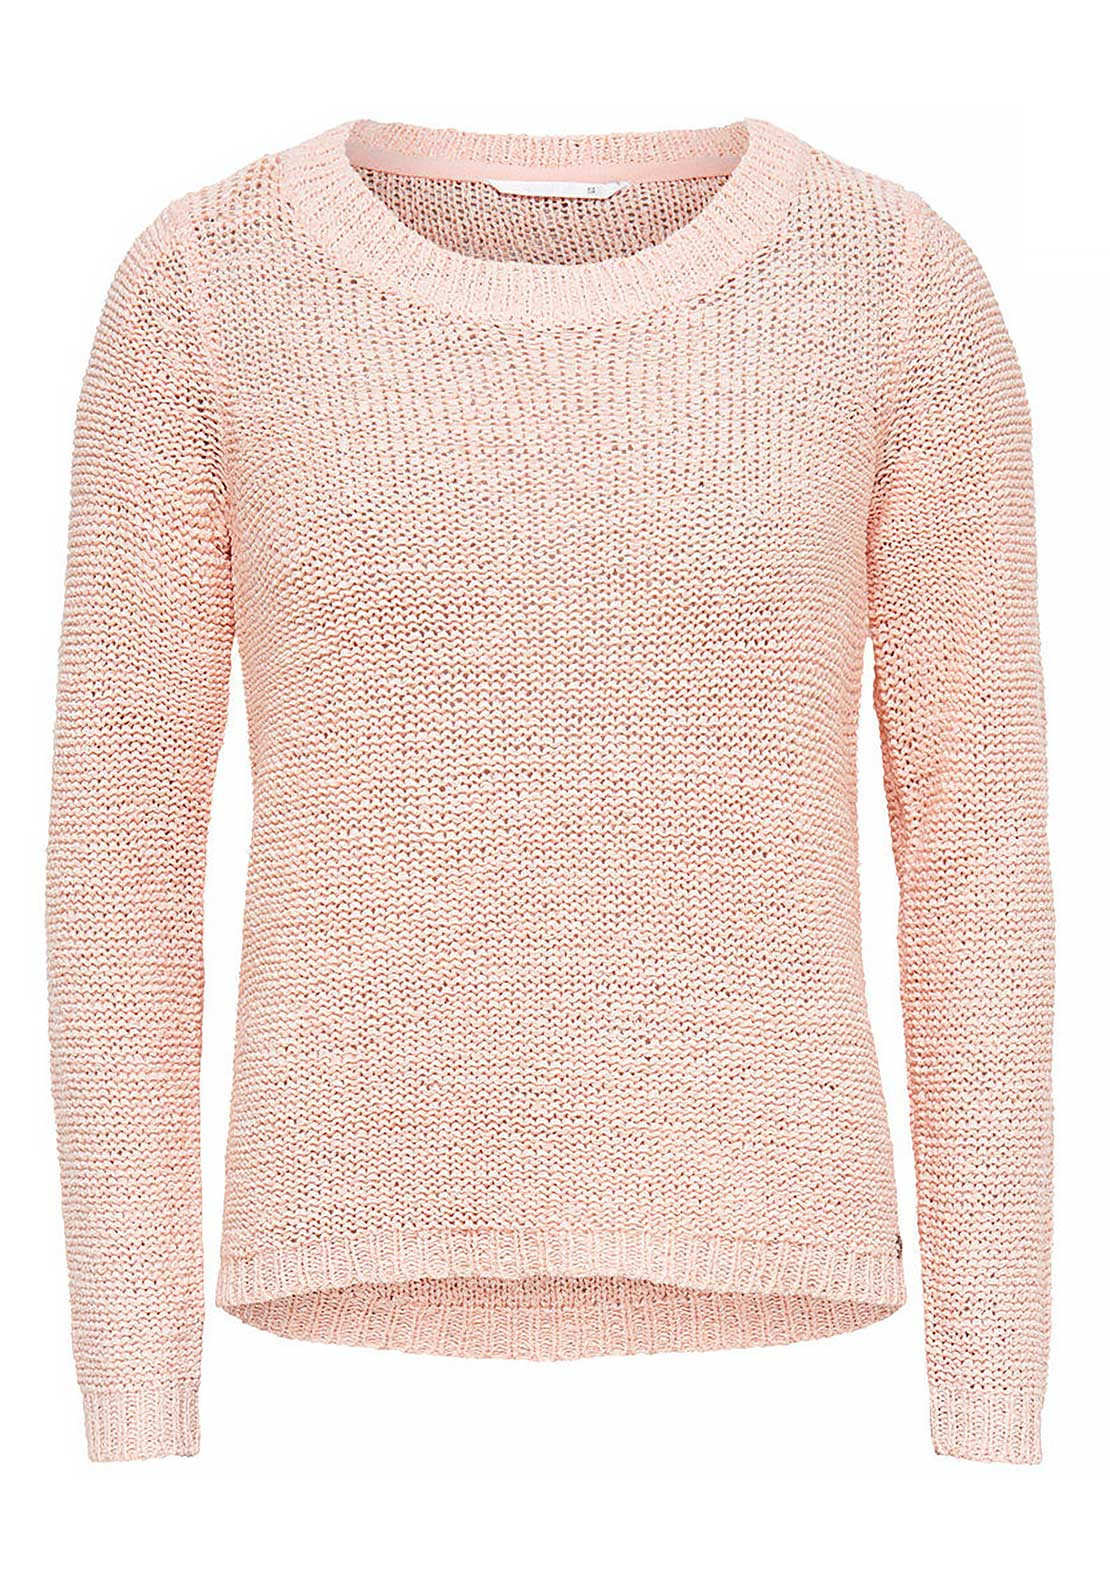 Only Geena Knitted Pullover Jumper, Peach Whip